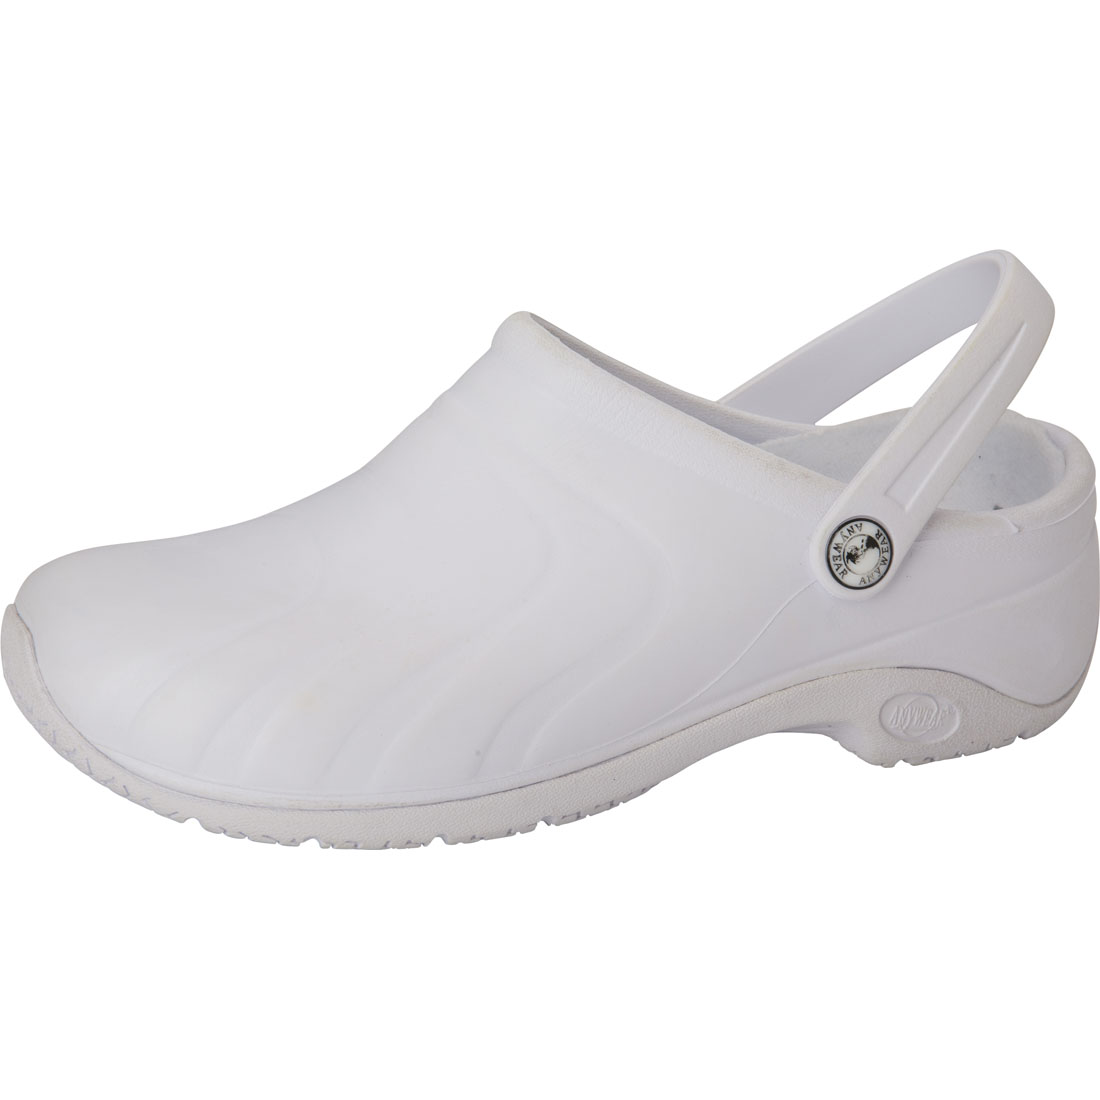 Anywear Medical Footwear Unisex Anywear Injected Clog w/Backstrap White